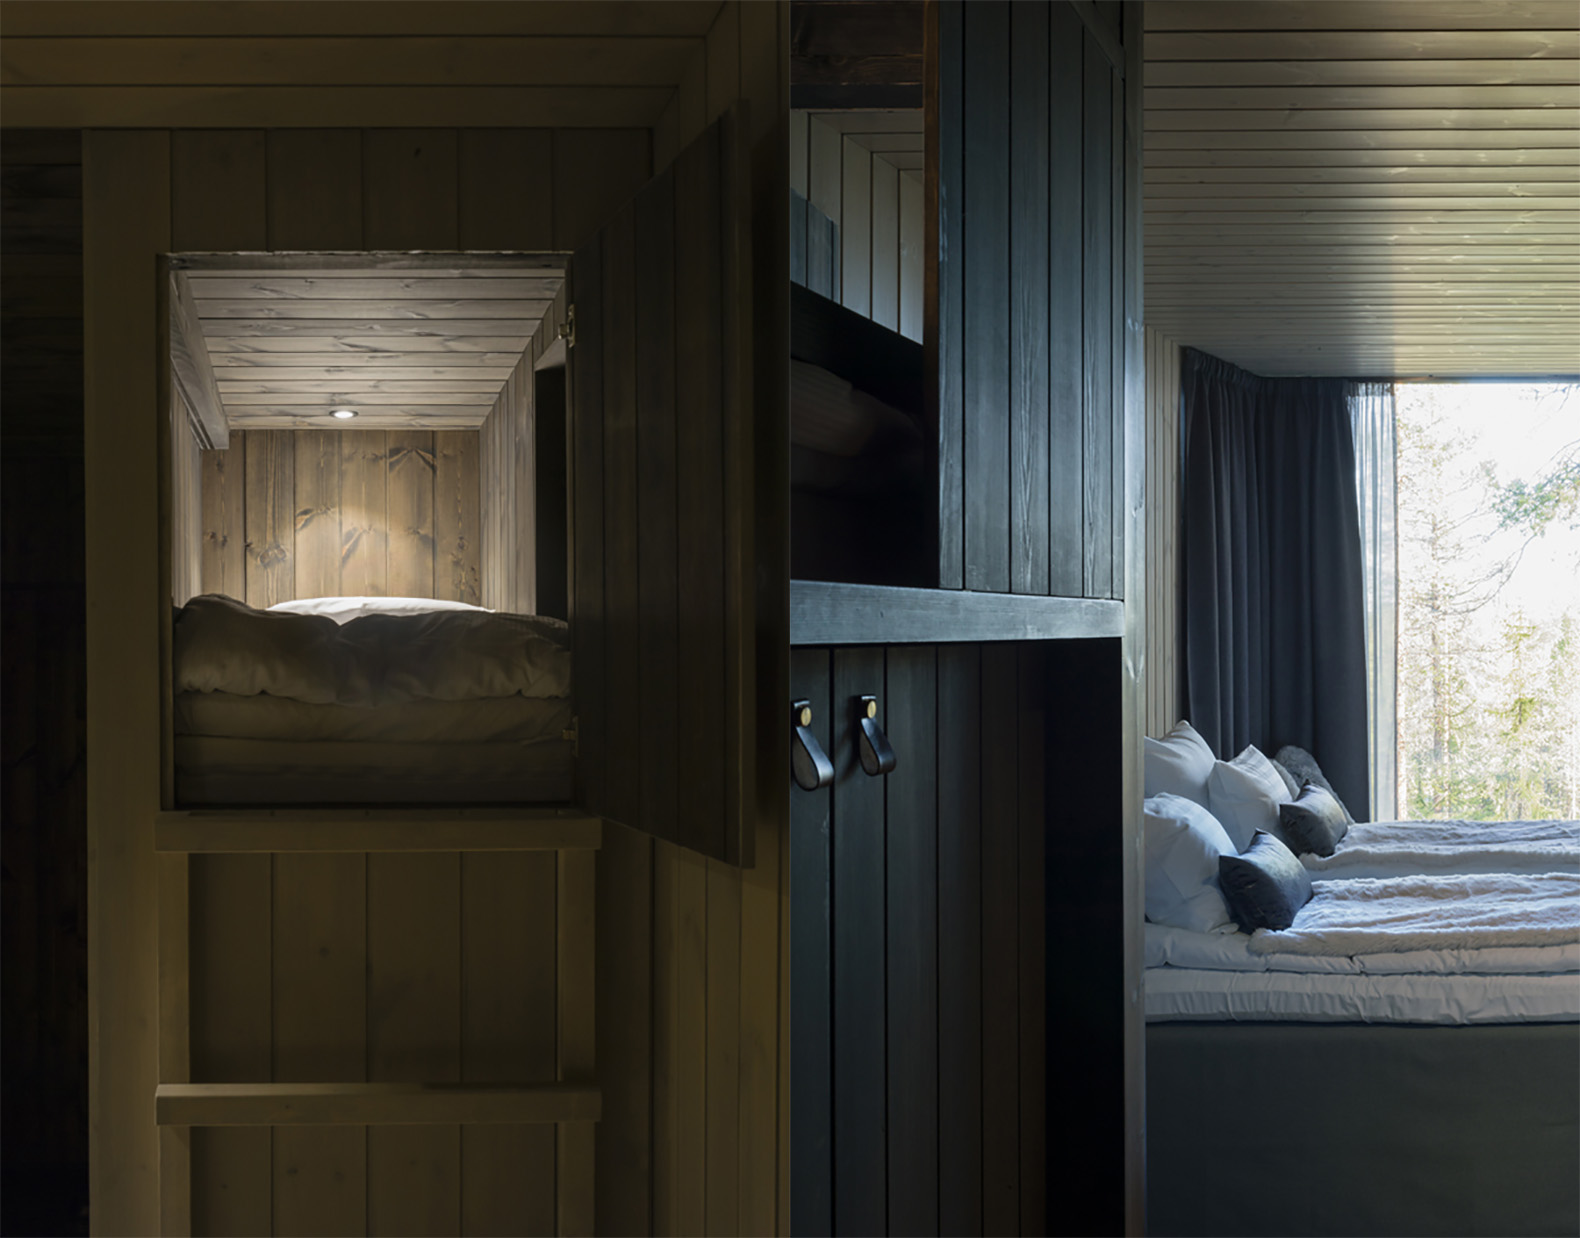 Lose yourself in Arctic beauty at Finland's charming TreeHouse Hotel